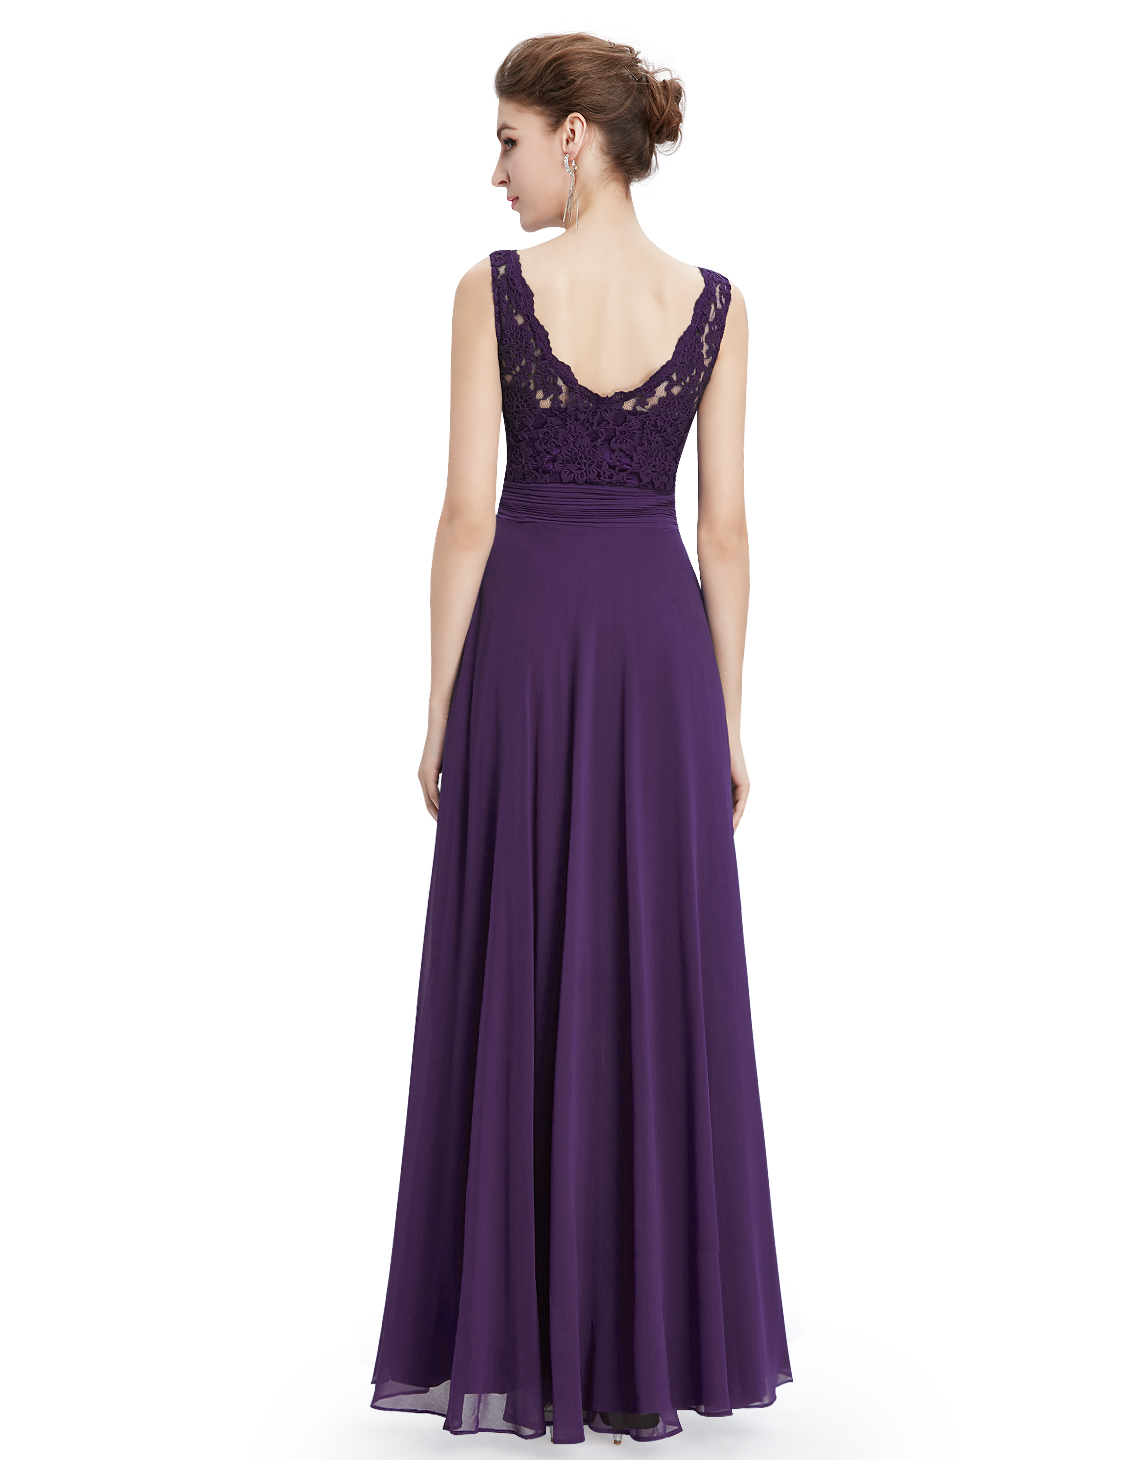 Womens Lace Bridesmaid Dresses Formal Evening Prom Ball Gown 08352 ...